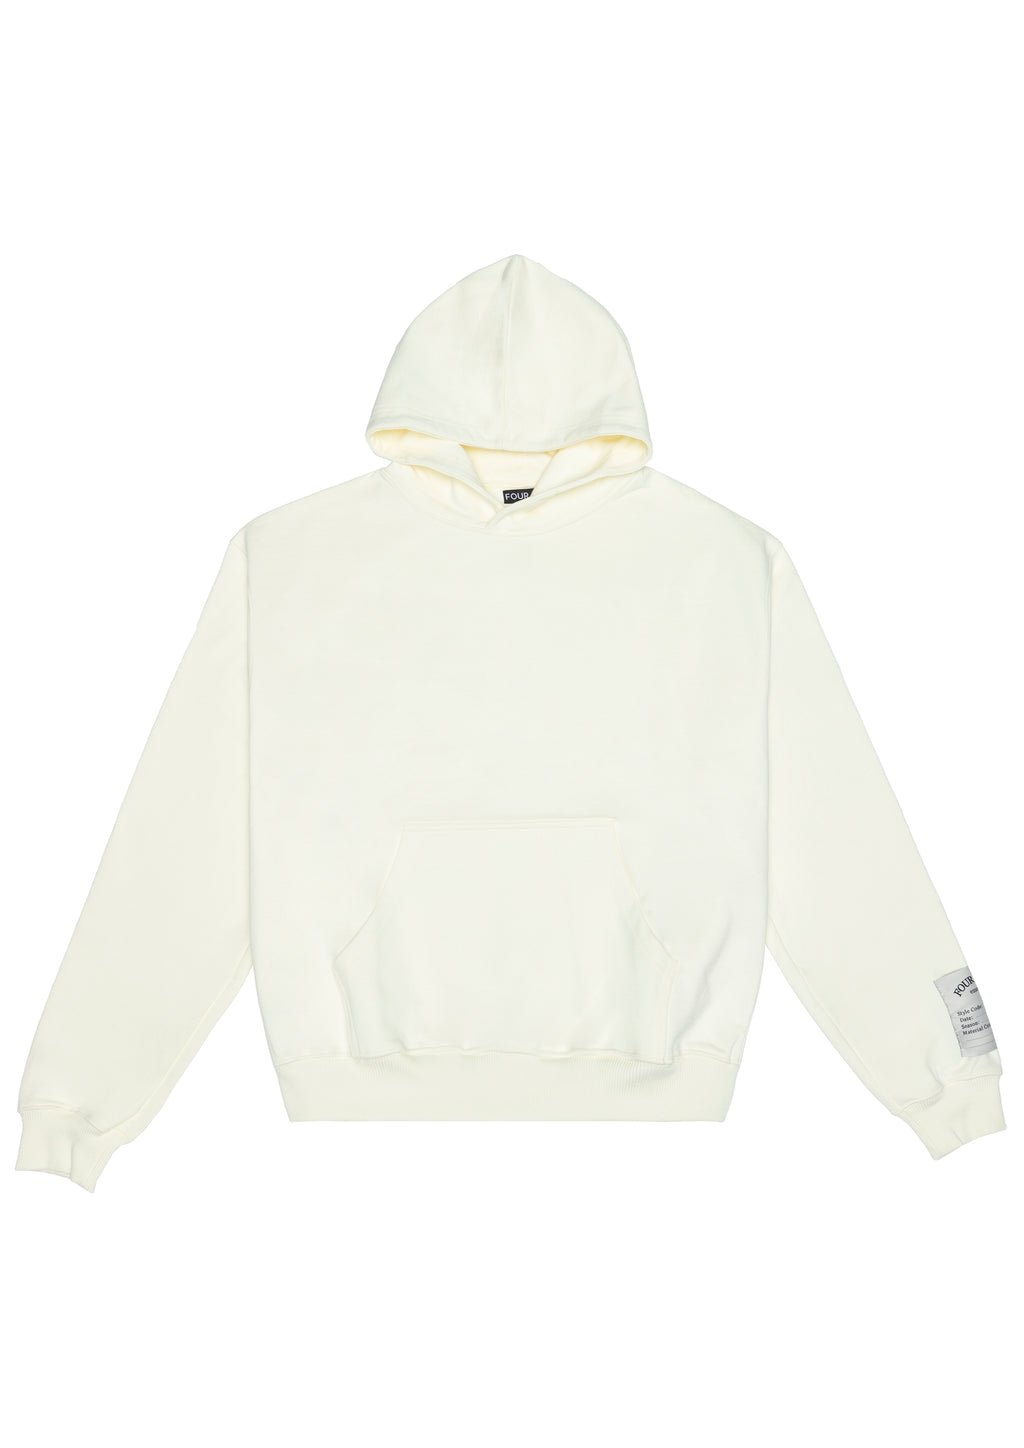 THE CALLAN HOODIE CREAM MENS